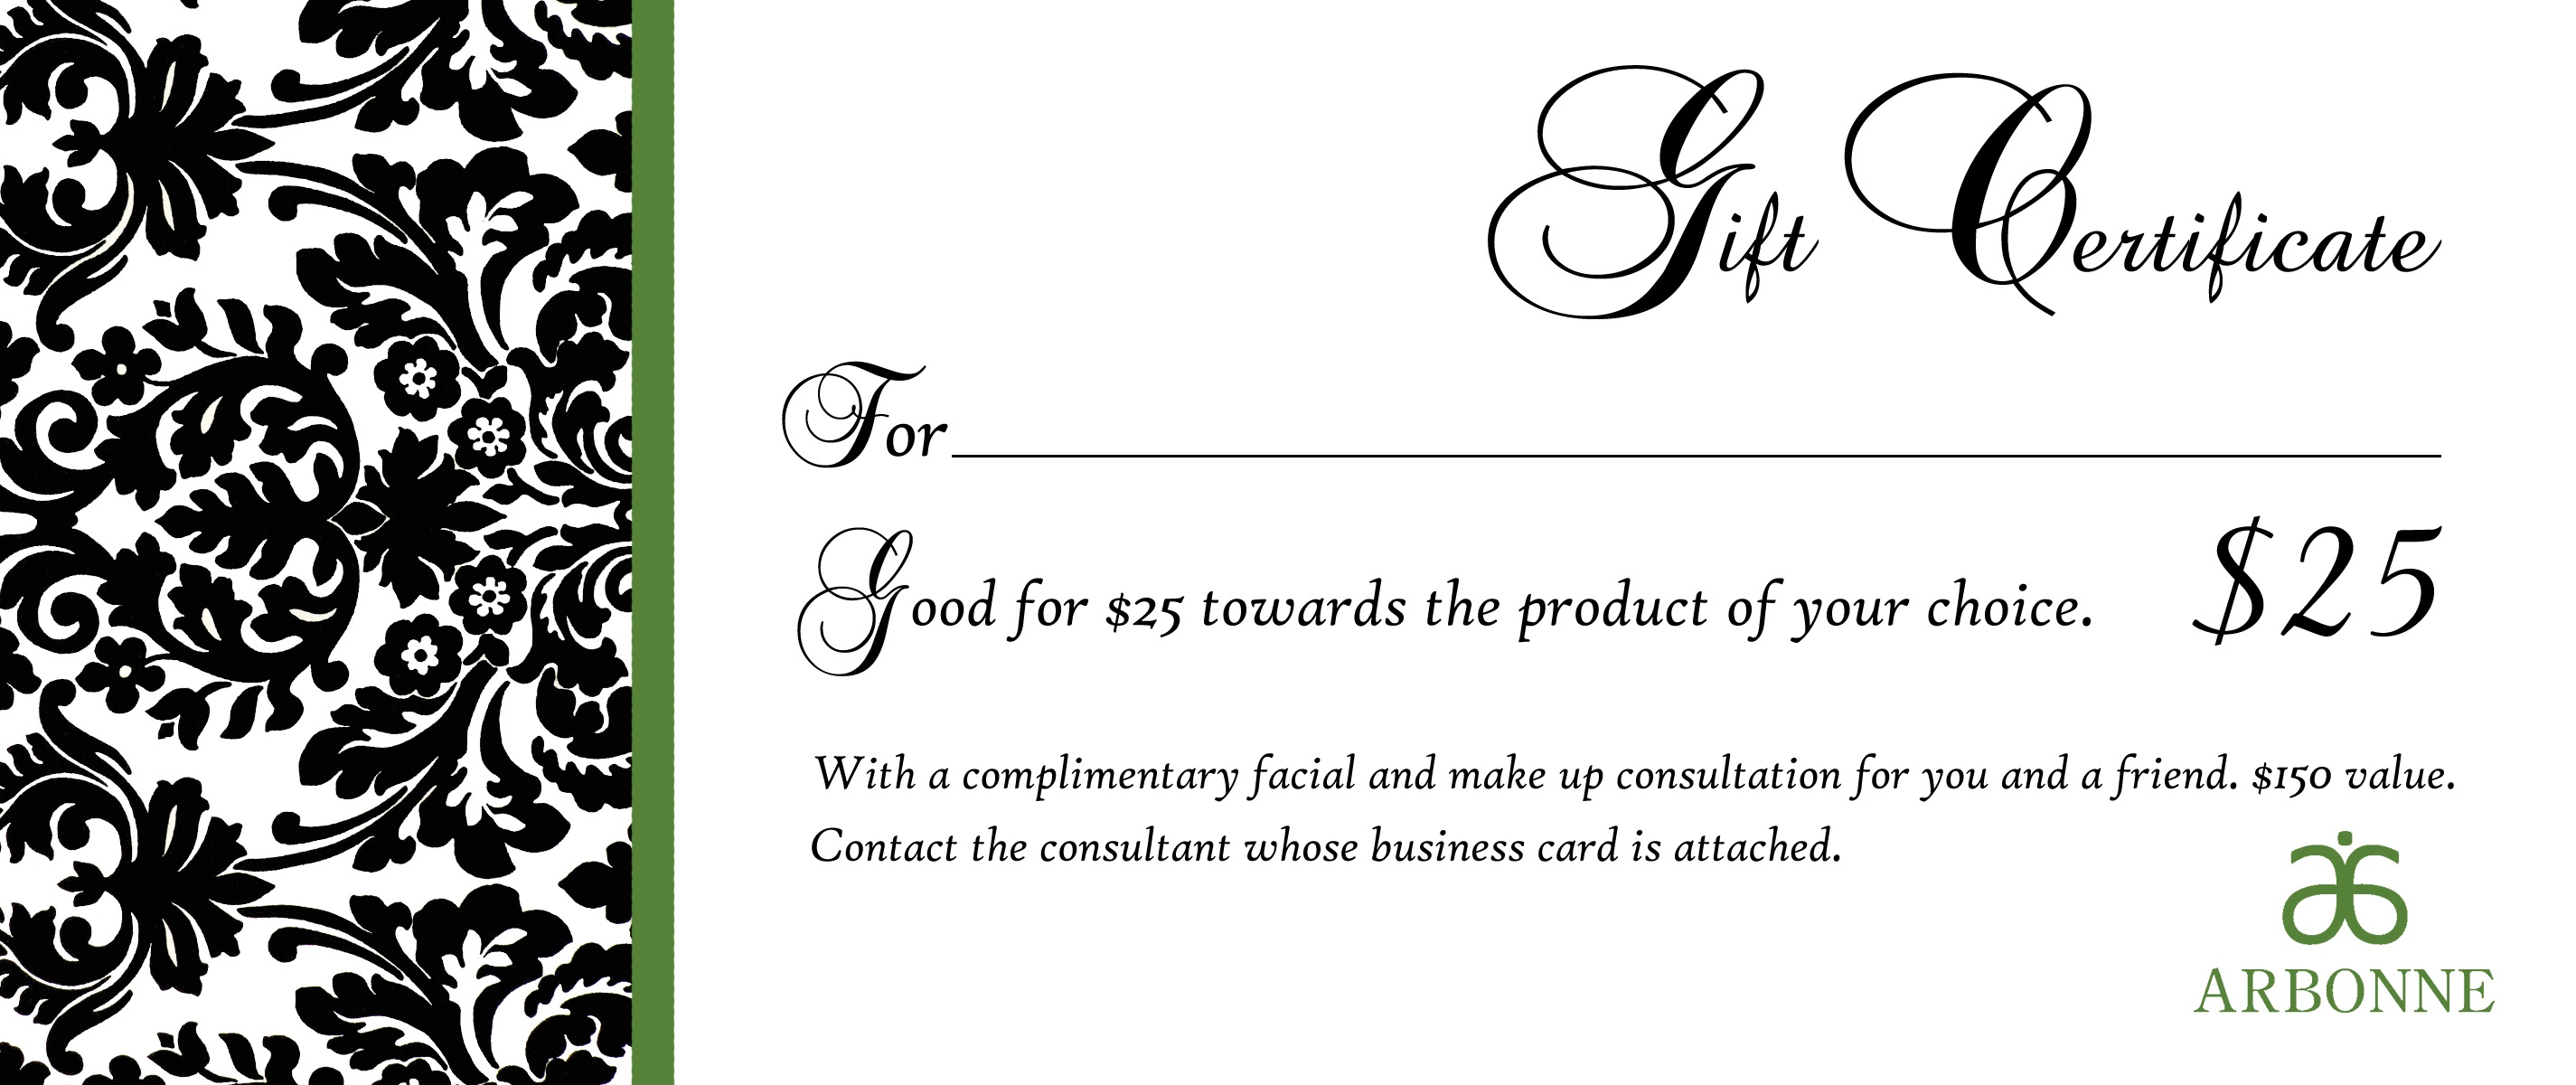 format of rent receipt gift vouchers templates click here for naming certificates templates gift certificate templates to gift voucher templates